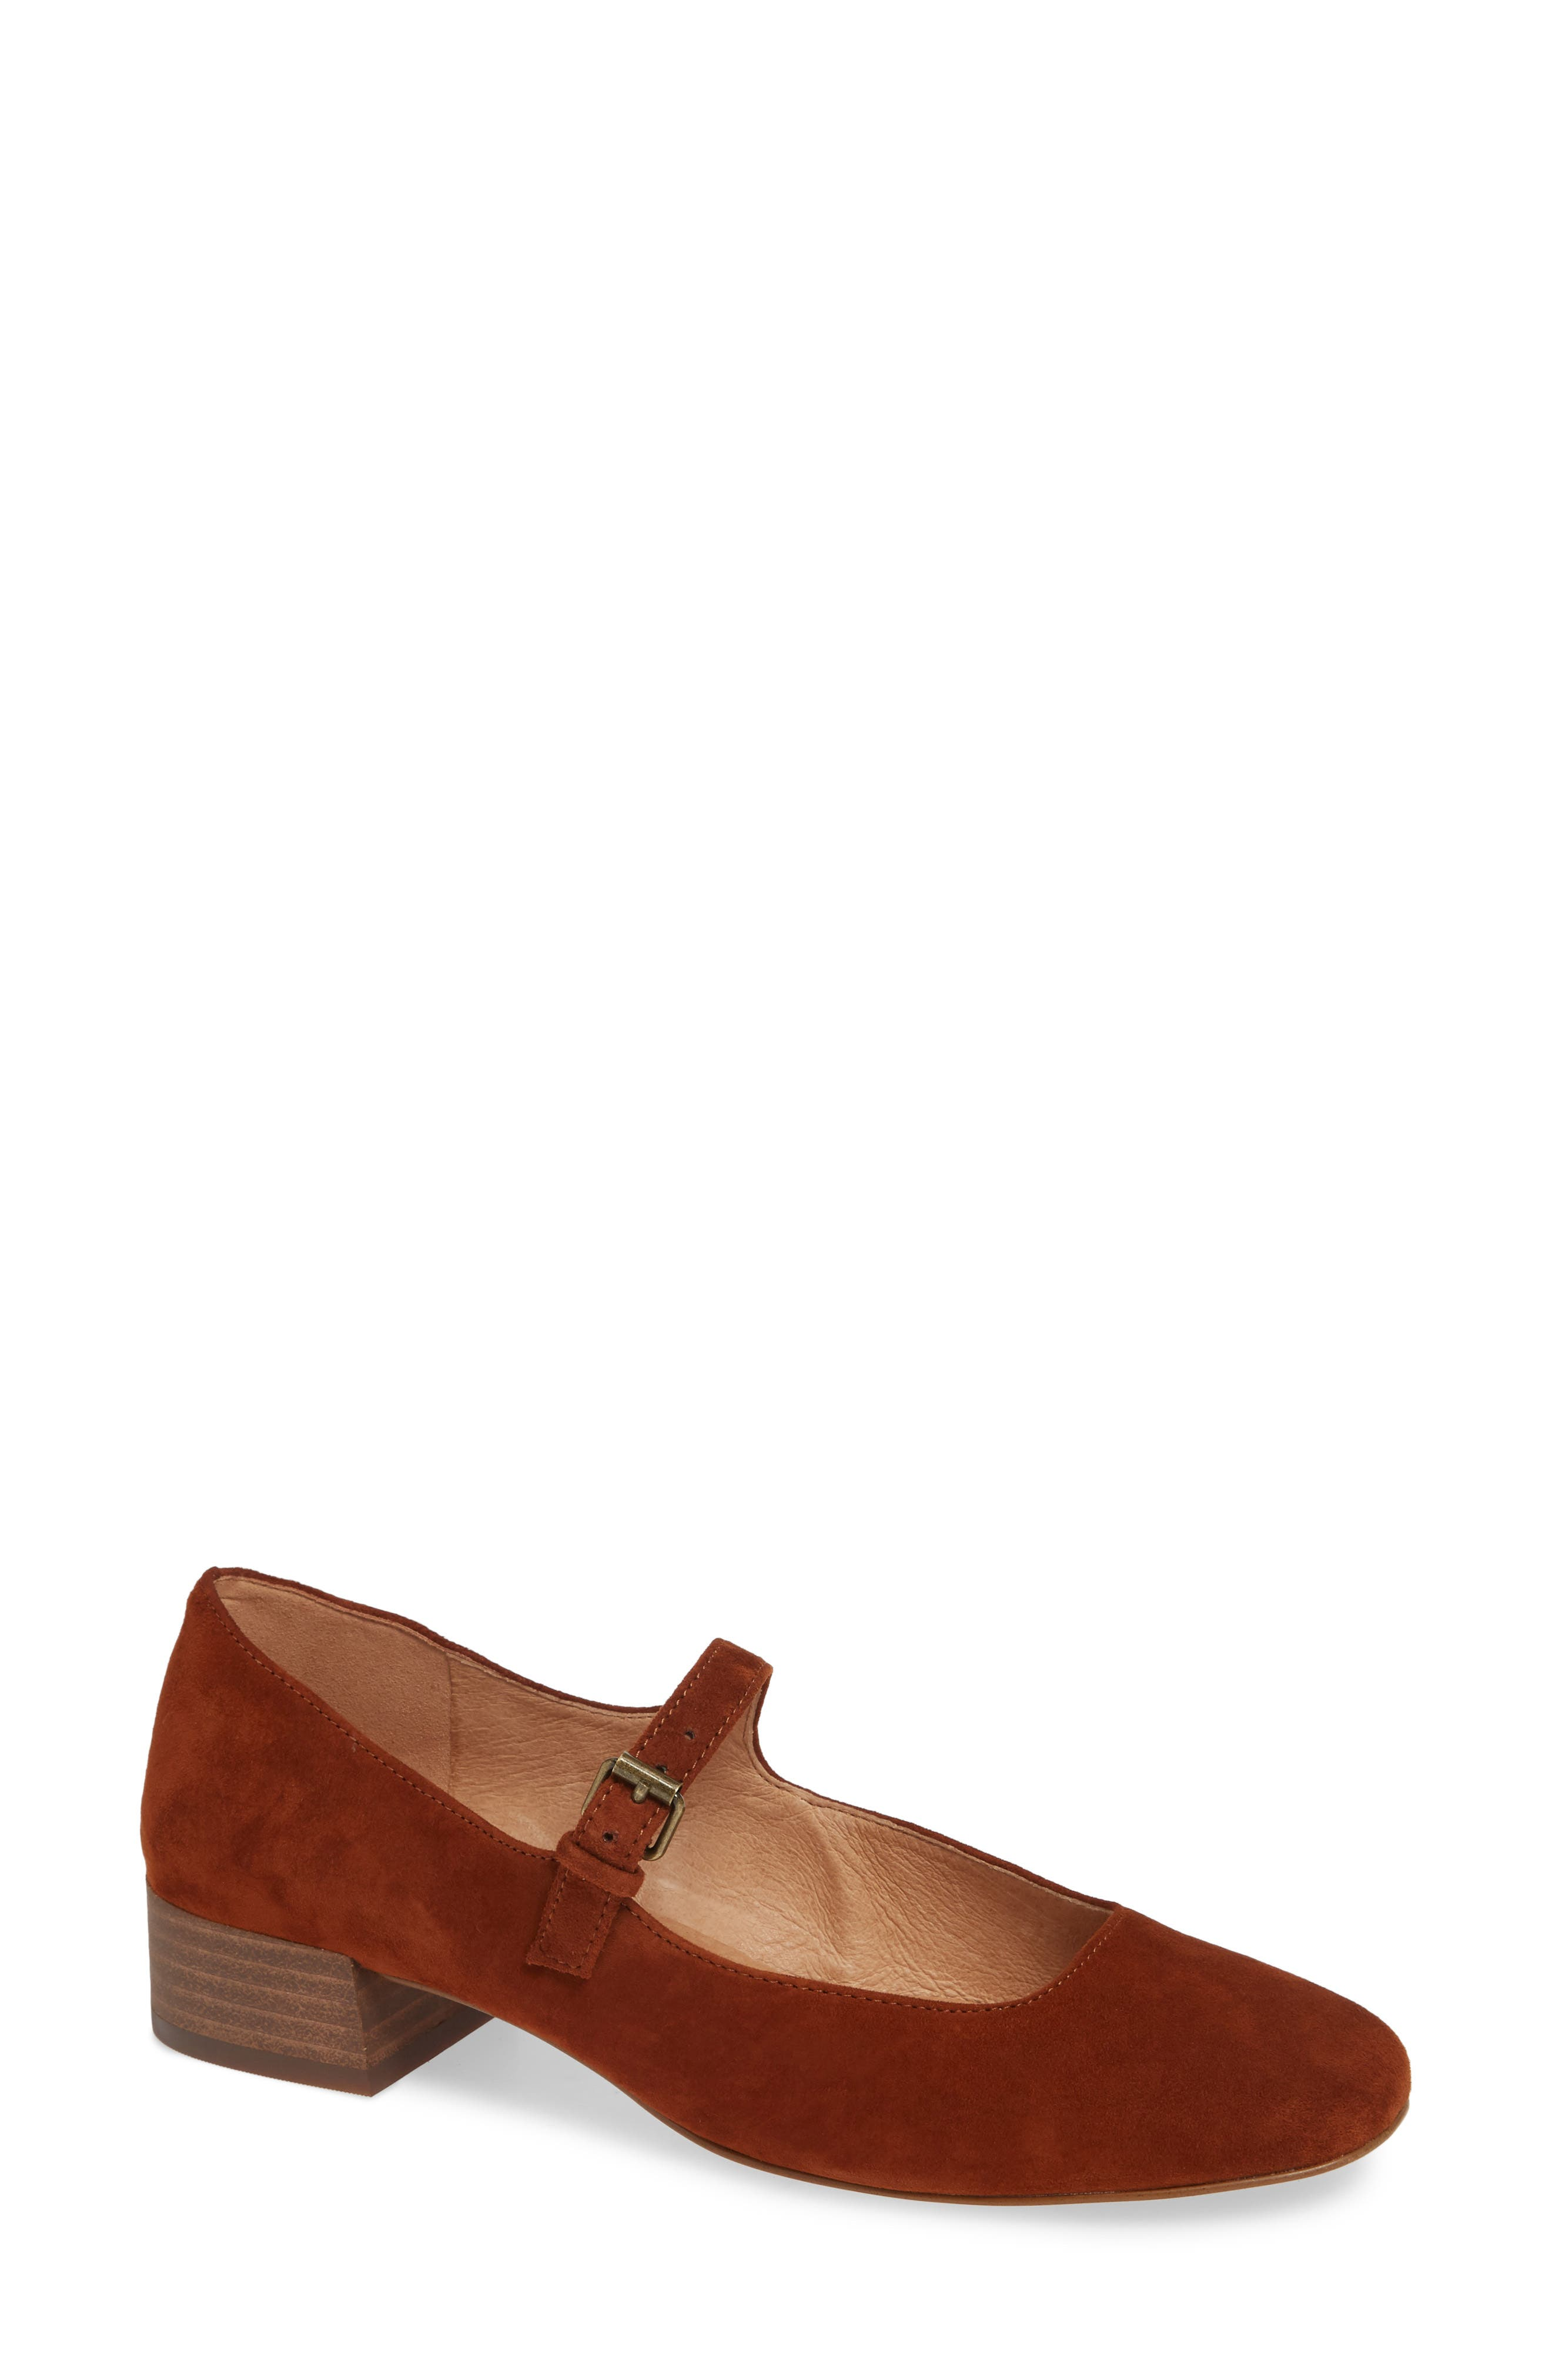 The Delilah Mary Jane Pump,                             Main thumbnail 1, color,                             MAPLE SYRUP SUEDE